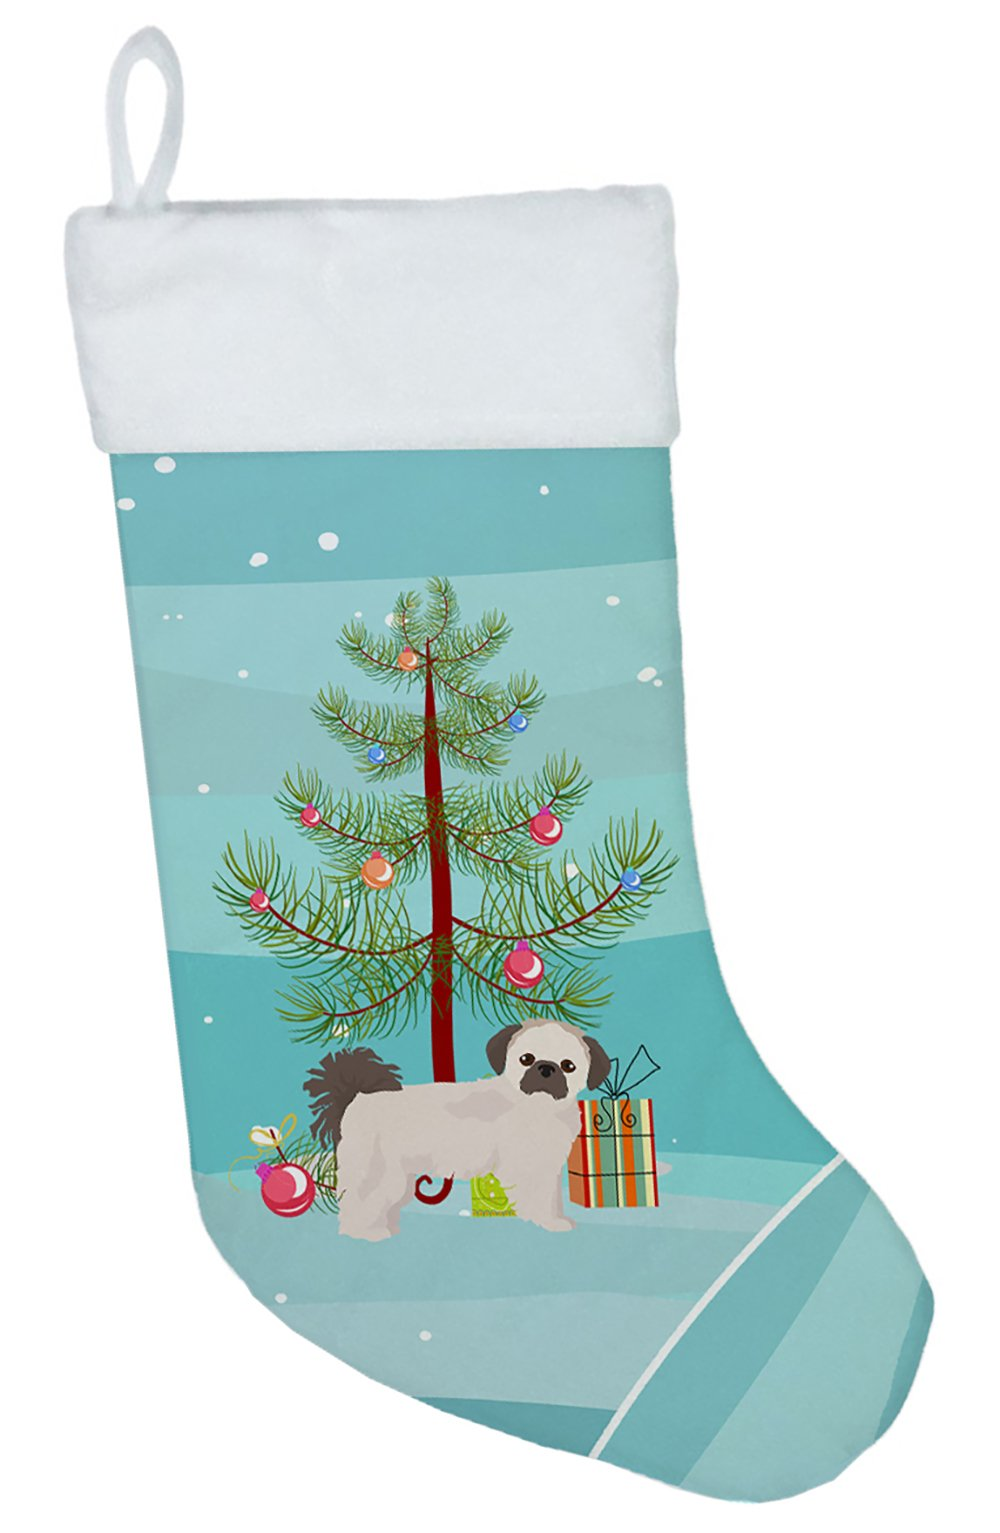 Pekeapoo Christmas Tree Christmas Stocking CK3857CS by Caroline's Treasures